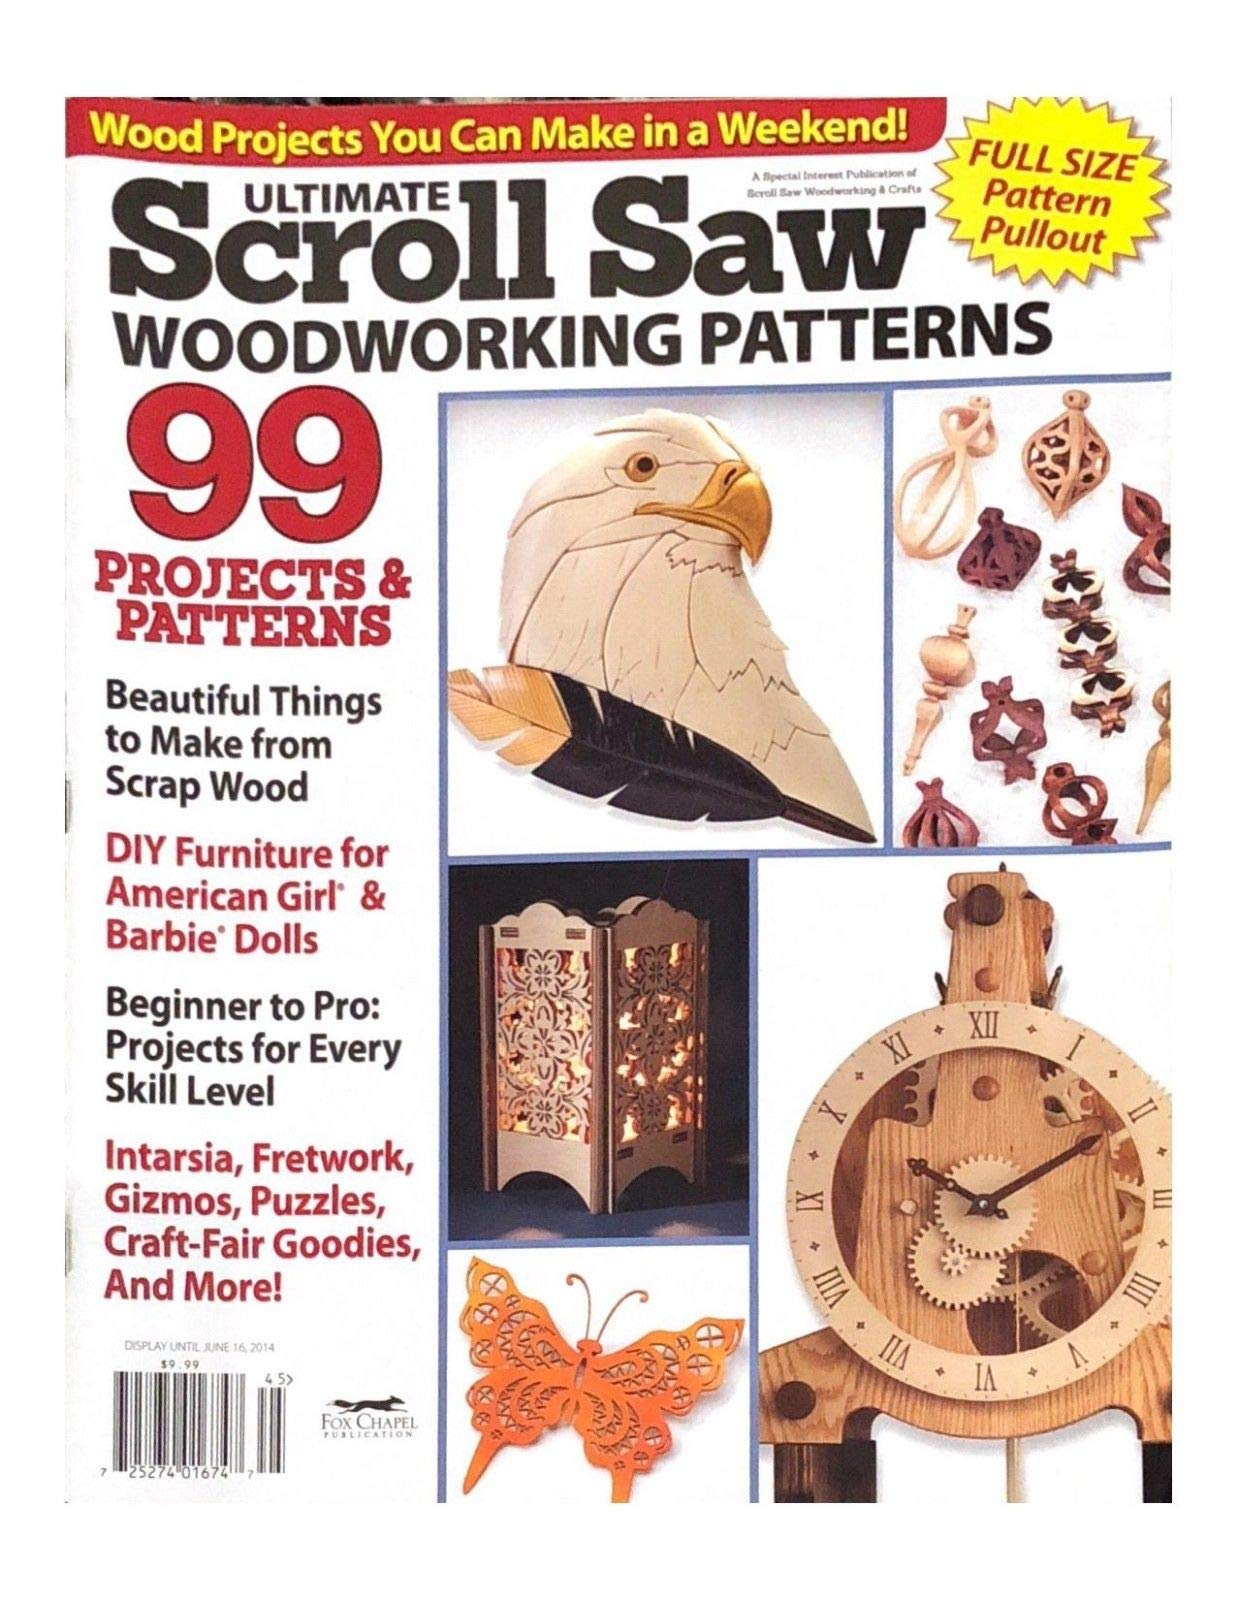 ULTIMATE SCROLL SAW MAGAZINE, WOODWORKING PATTERNS DISPLAY UNTIL JUNE 16, 2014